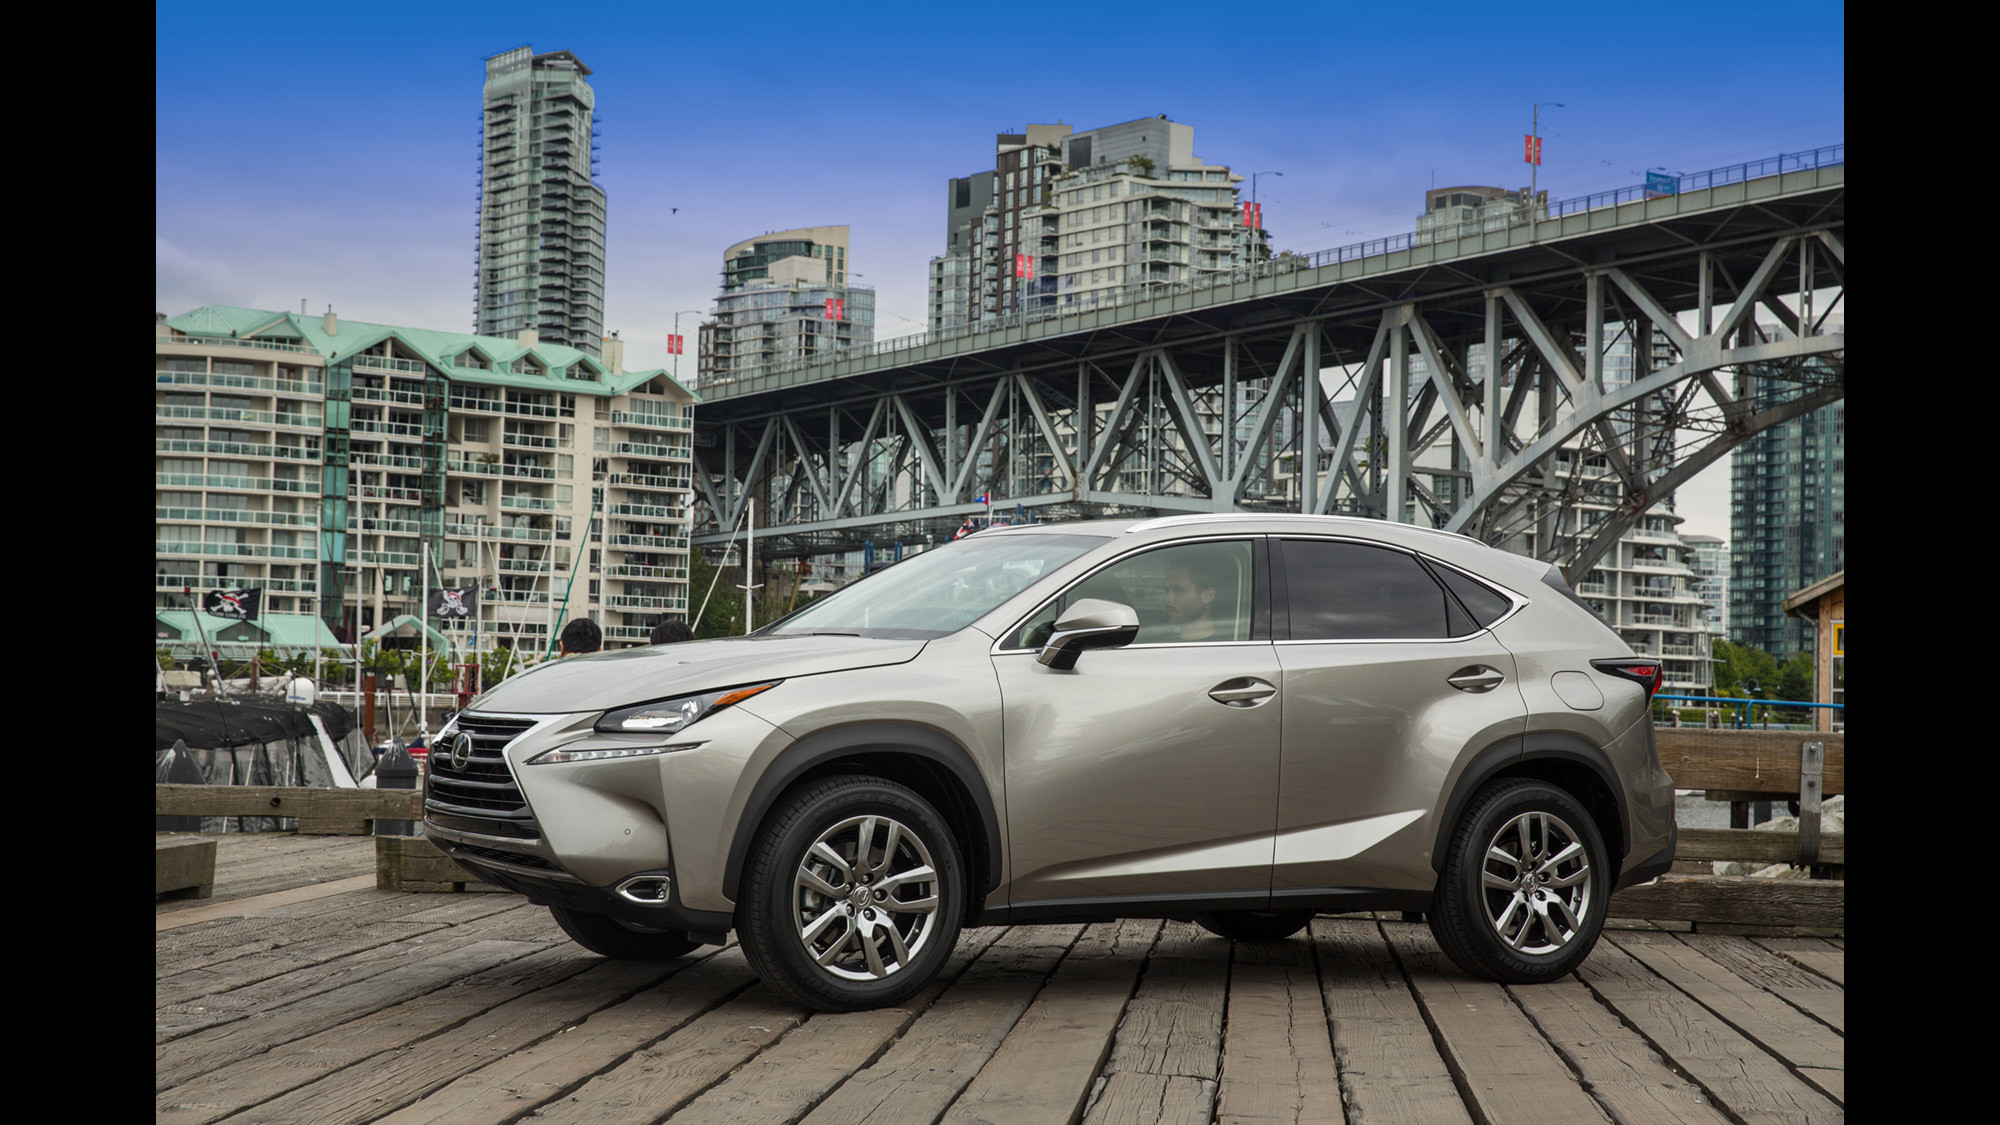 Review plenty riding on shoulders of lexus nx 200t and lincoln mkc crossovers la times